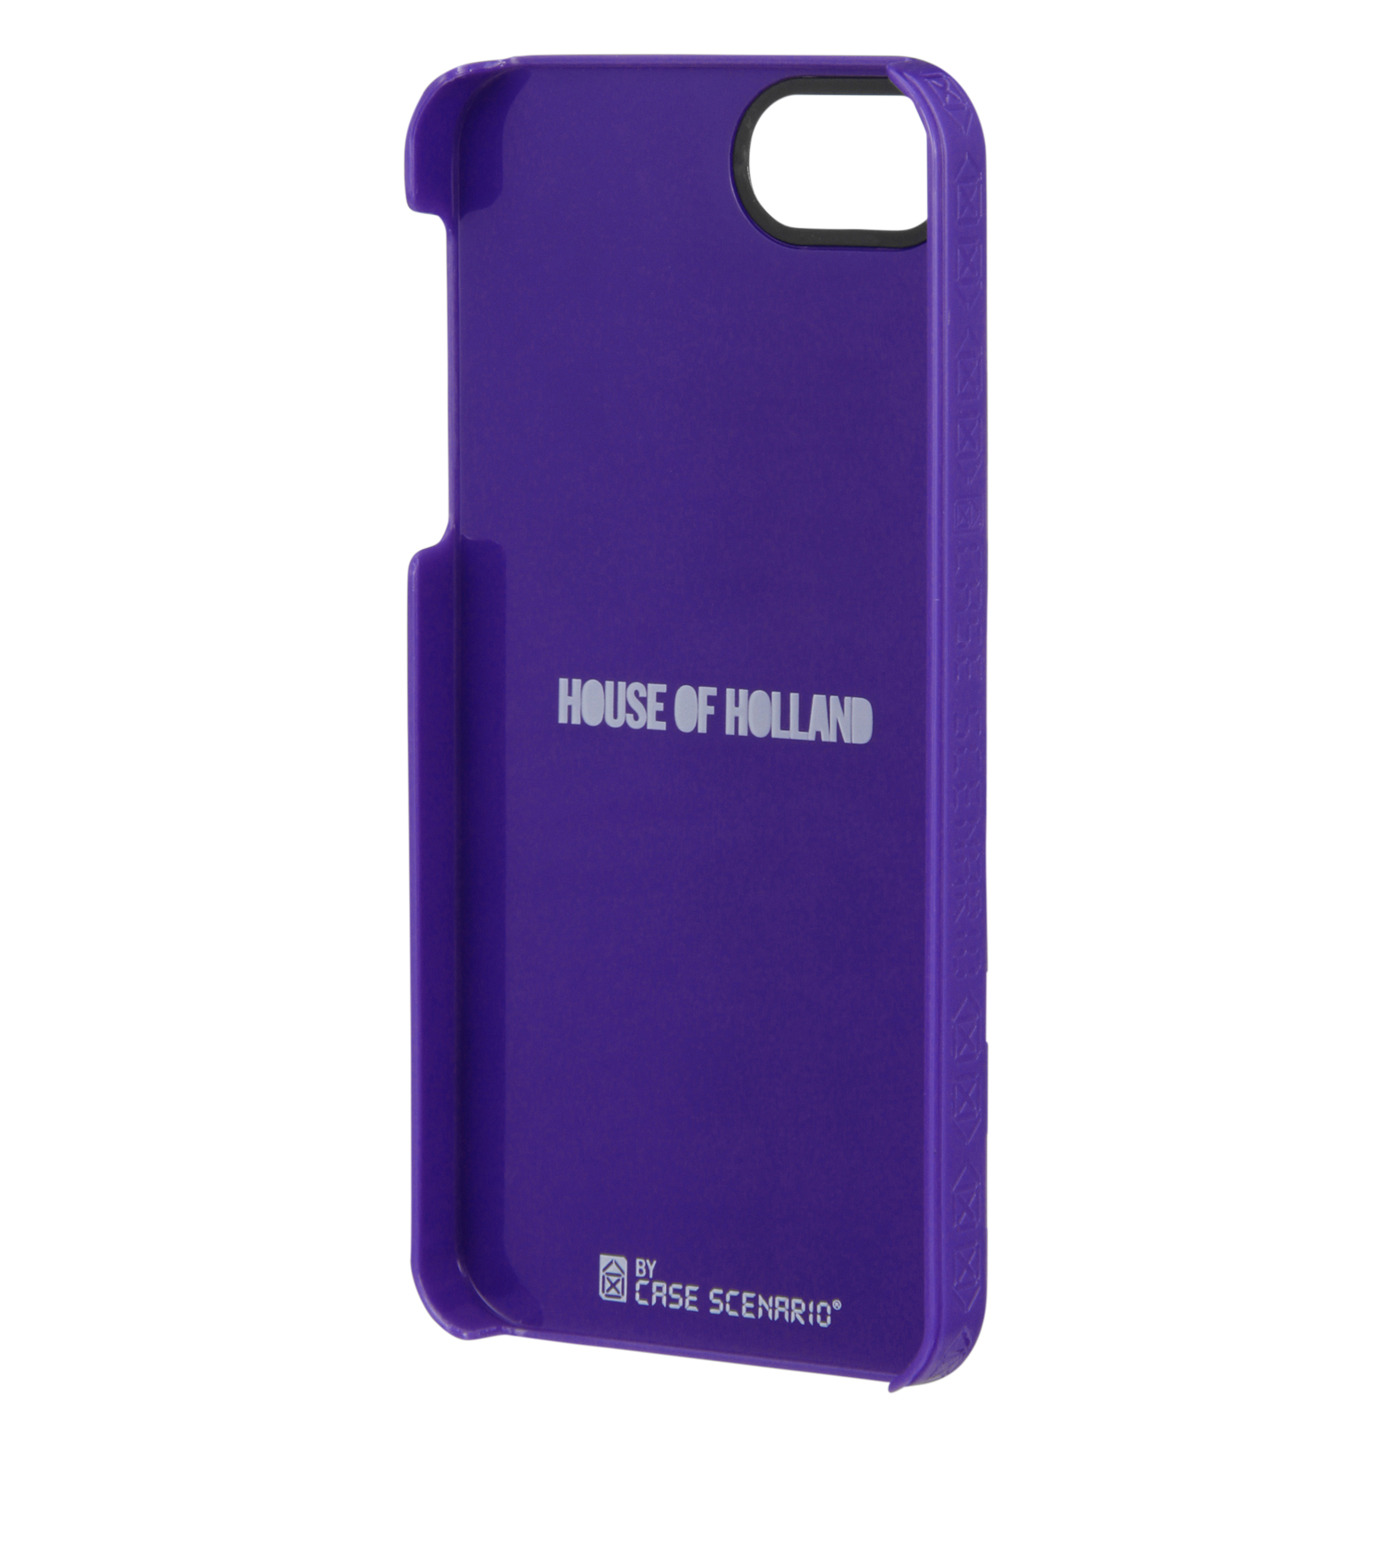 CASE SCENARIO(ケースシナリオ)のHouse of holland-WHITE(ケースiphone5/5s/se/case iphone5/5s/se)-HH-IPH5-PP-4 拡大詳細画像2